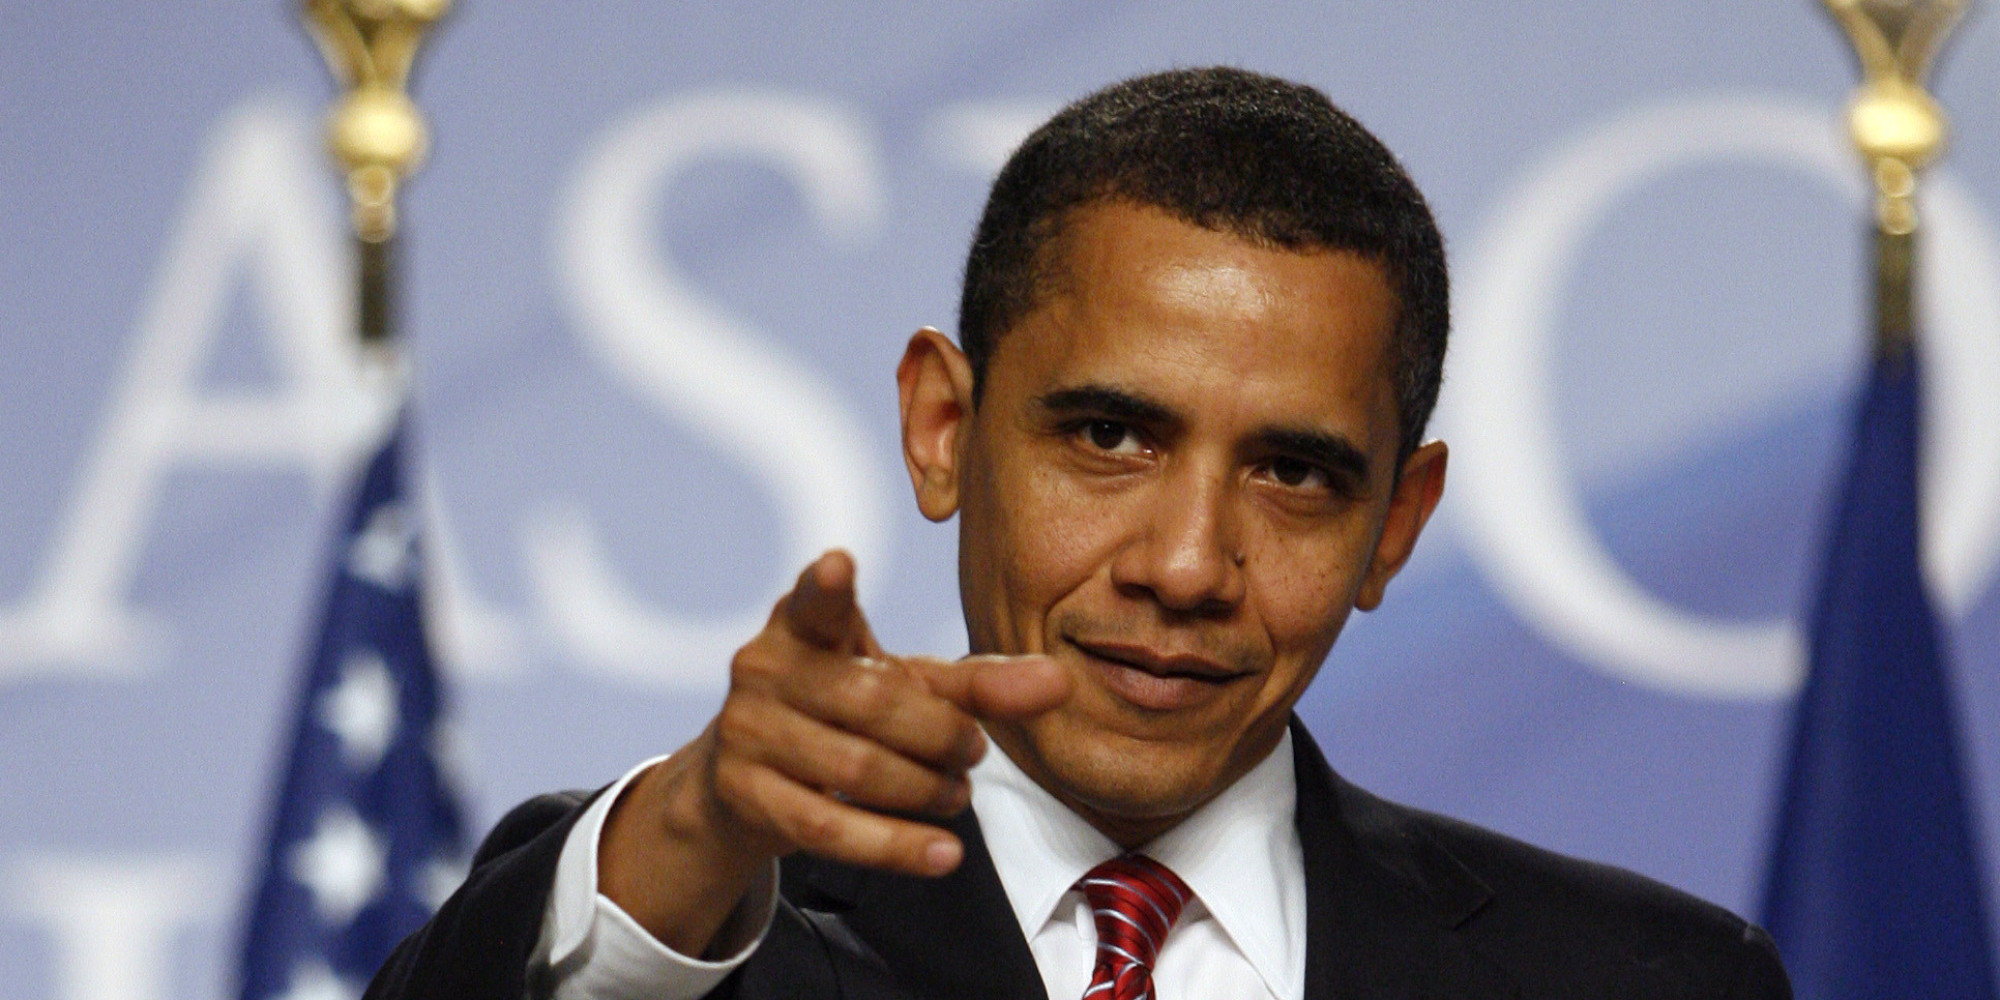 Image result for obama pointing